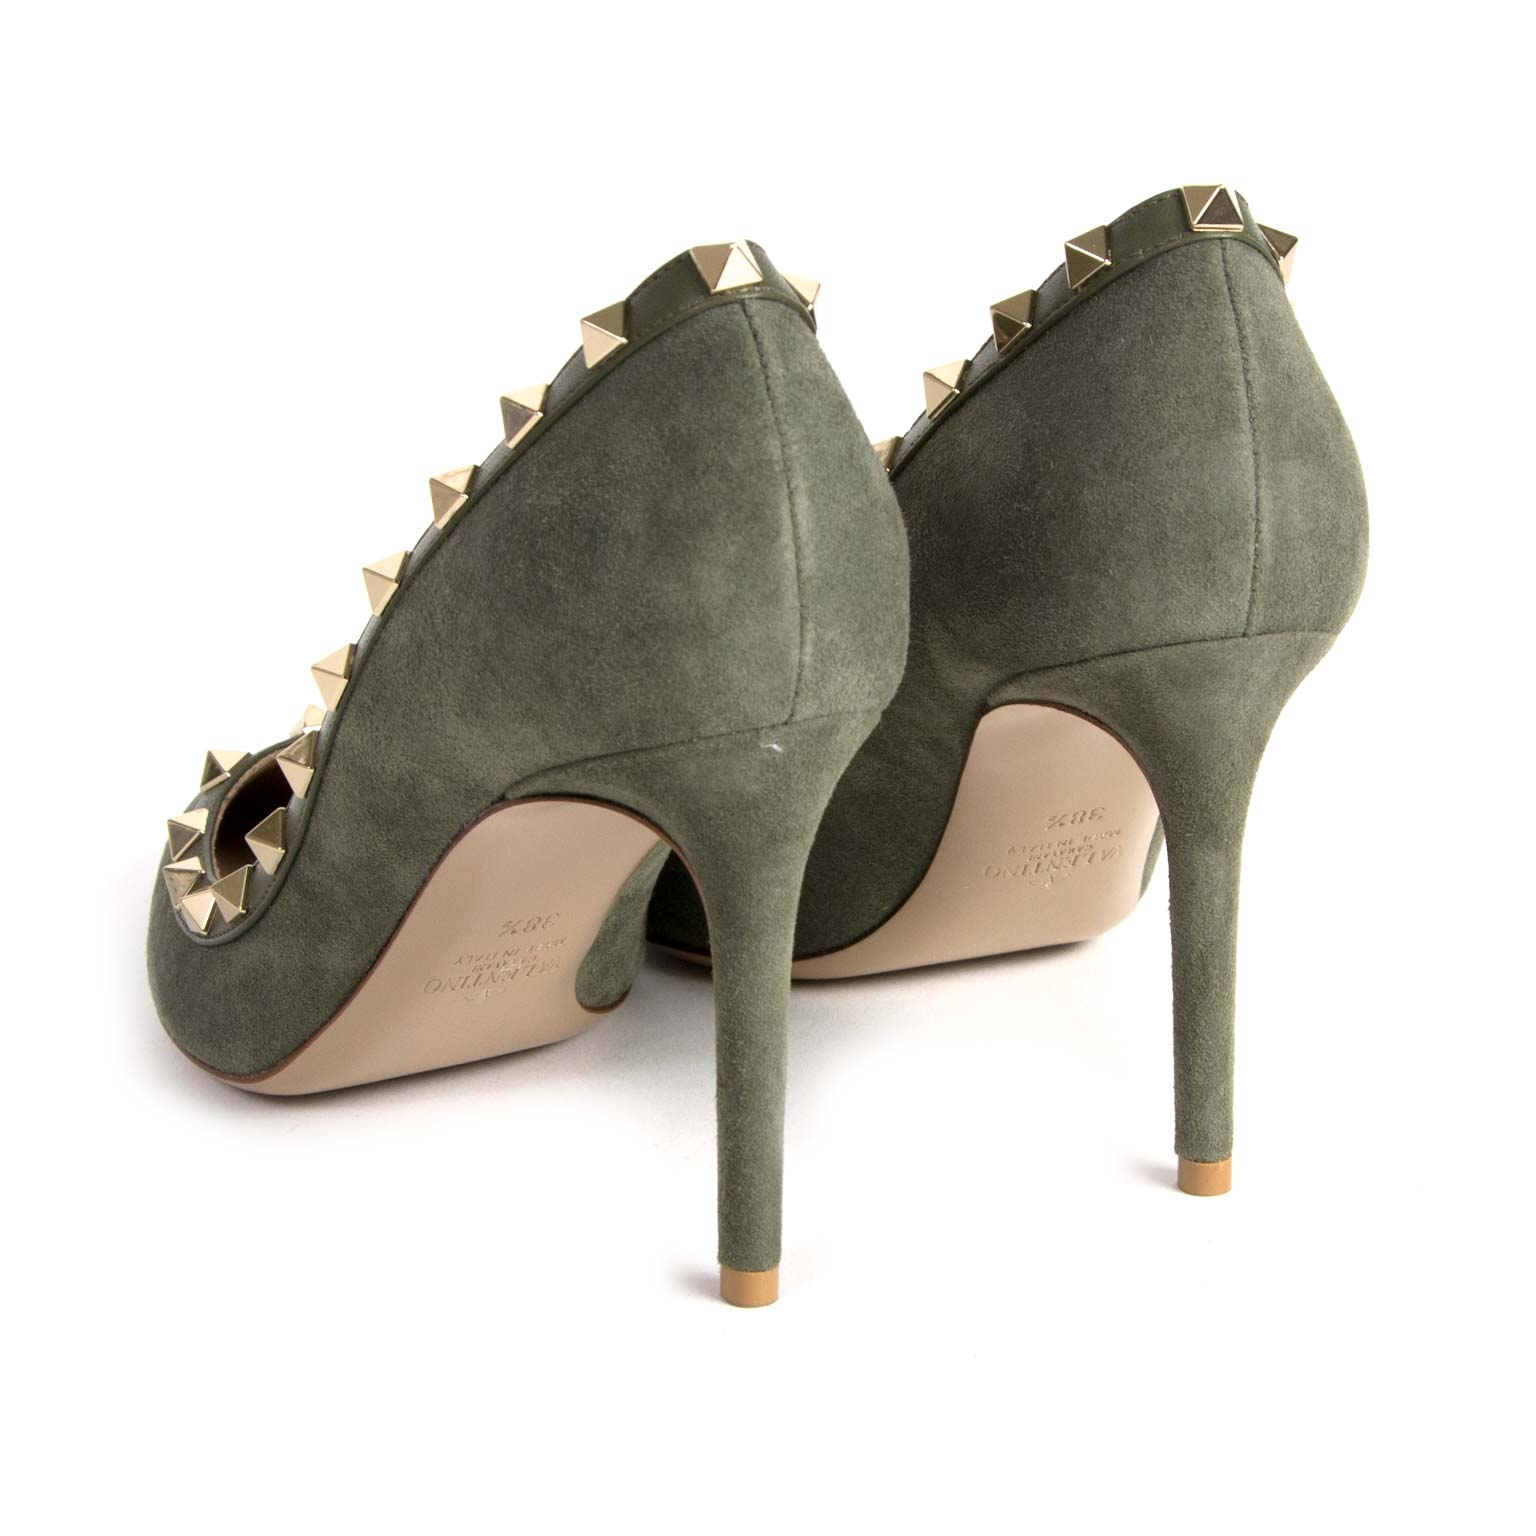 buy Valentino Khaki Suede Rockstud Pumps - Size 38,5 and pay save online at labellov.com